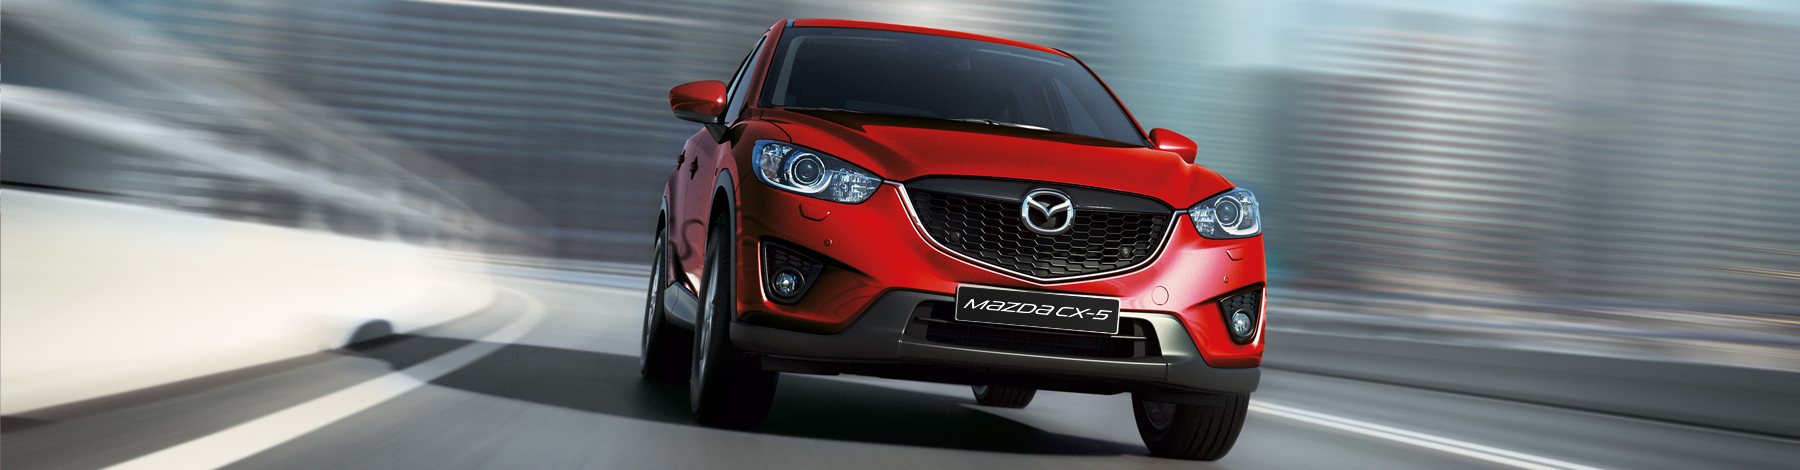 mazda wallpaper (Mazda CX-5)